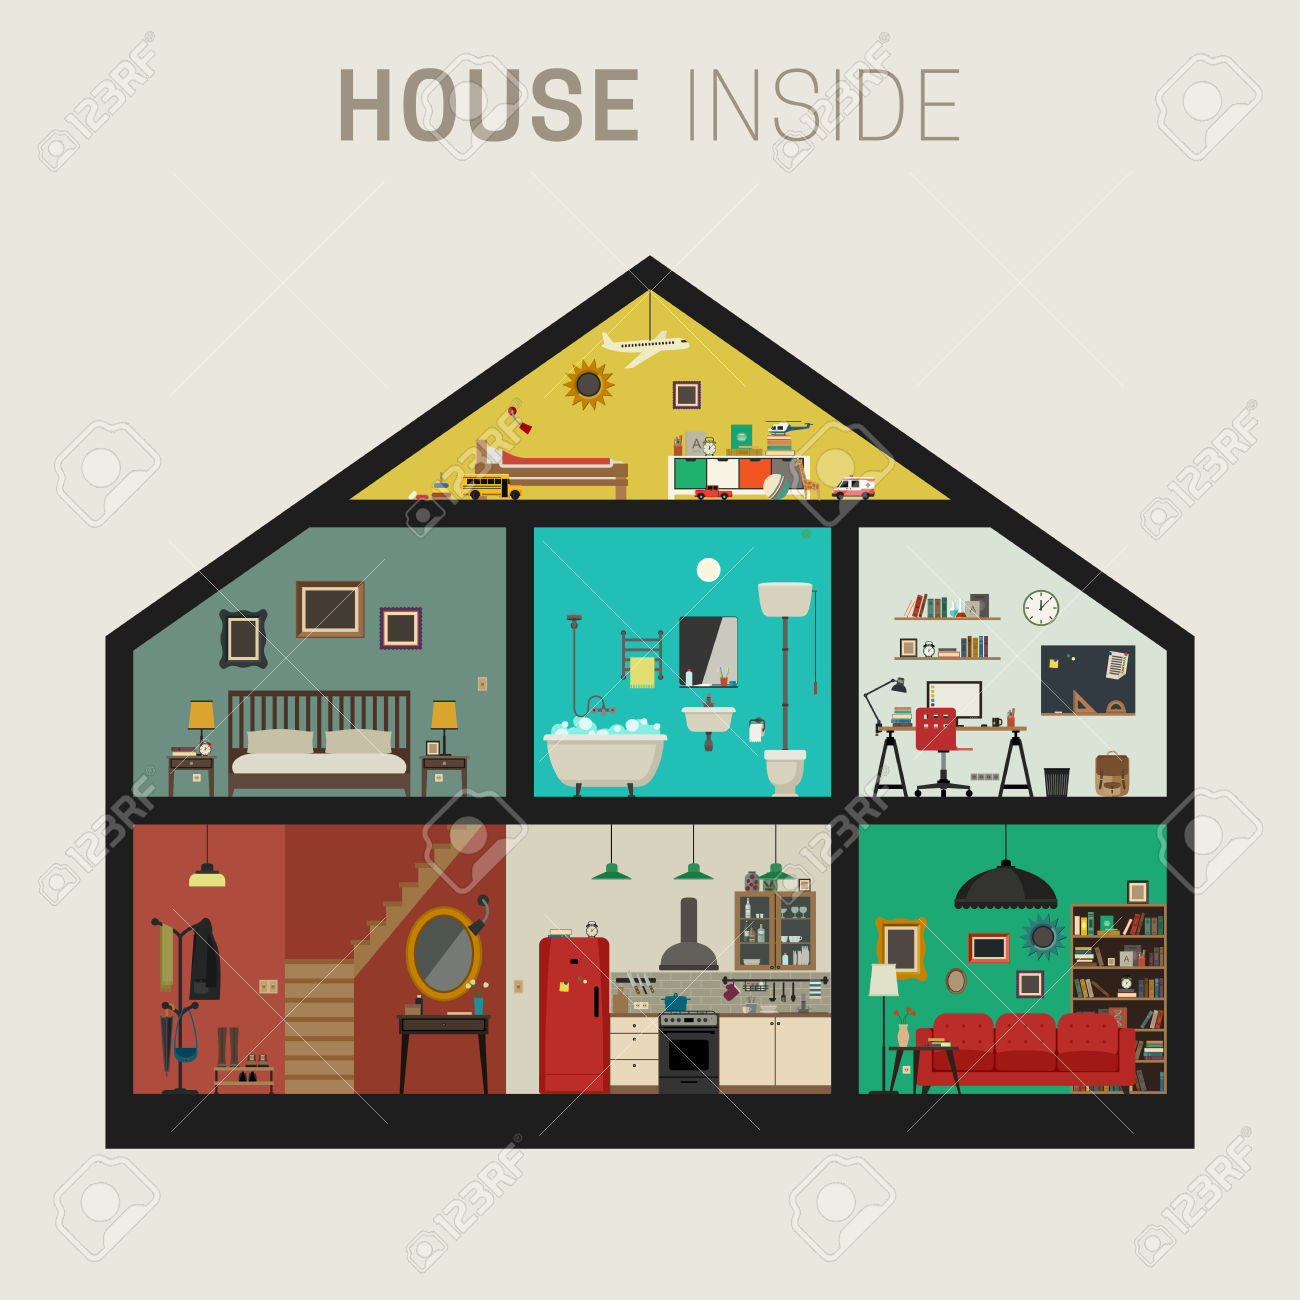 Inside clipart house interior Inside Interior collection House Vector